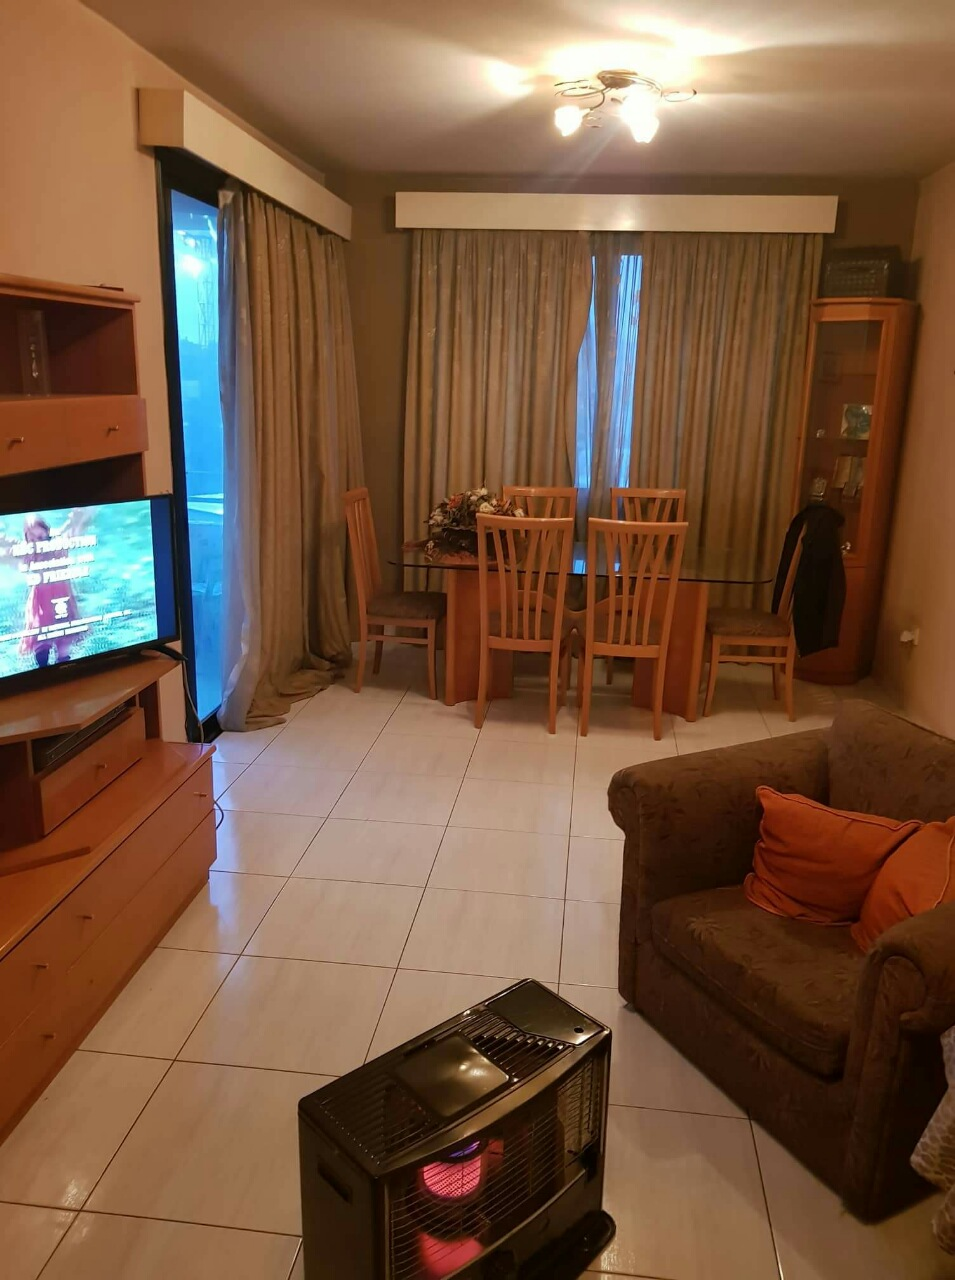 3 bedroom large apartment in a small building with double parking